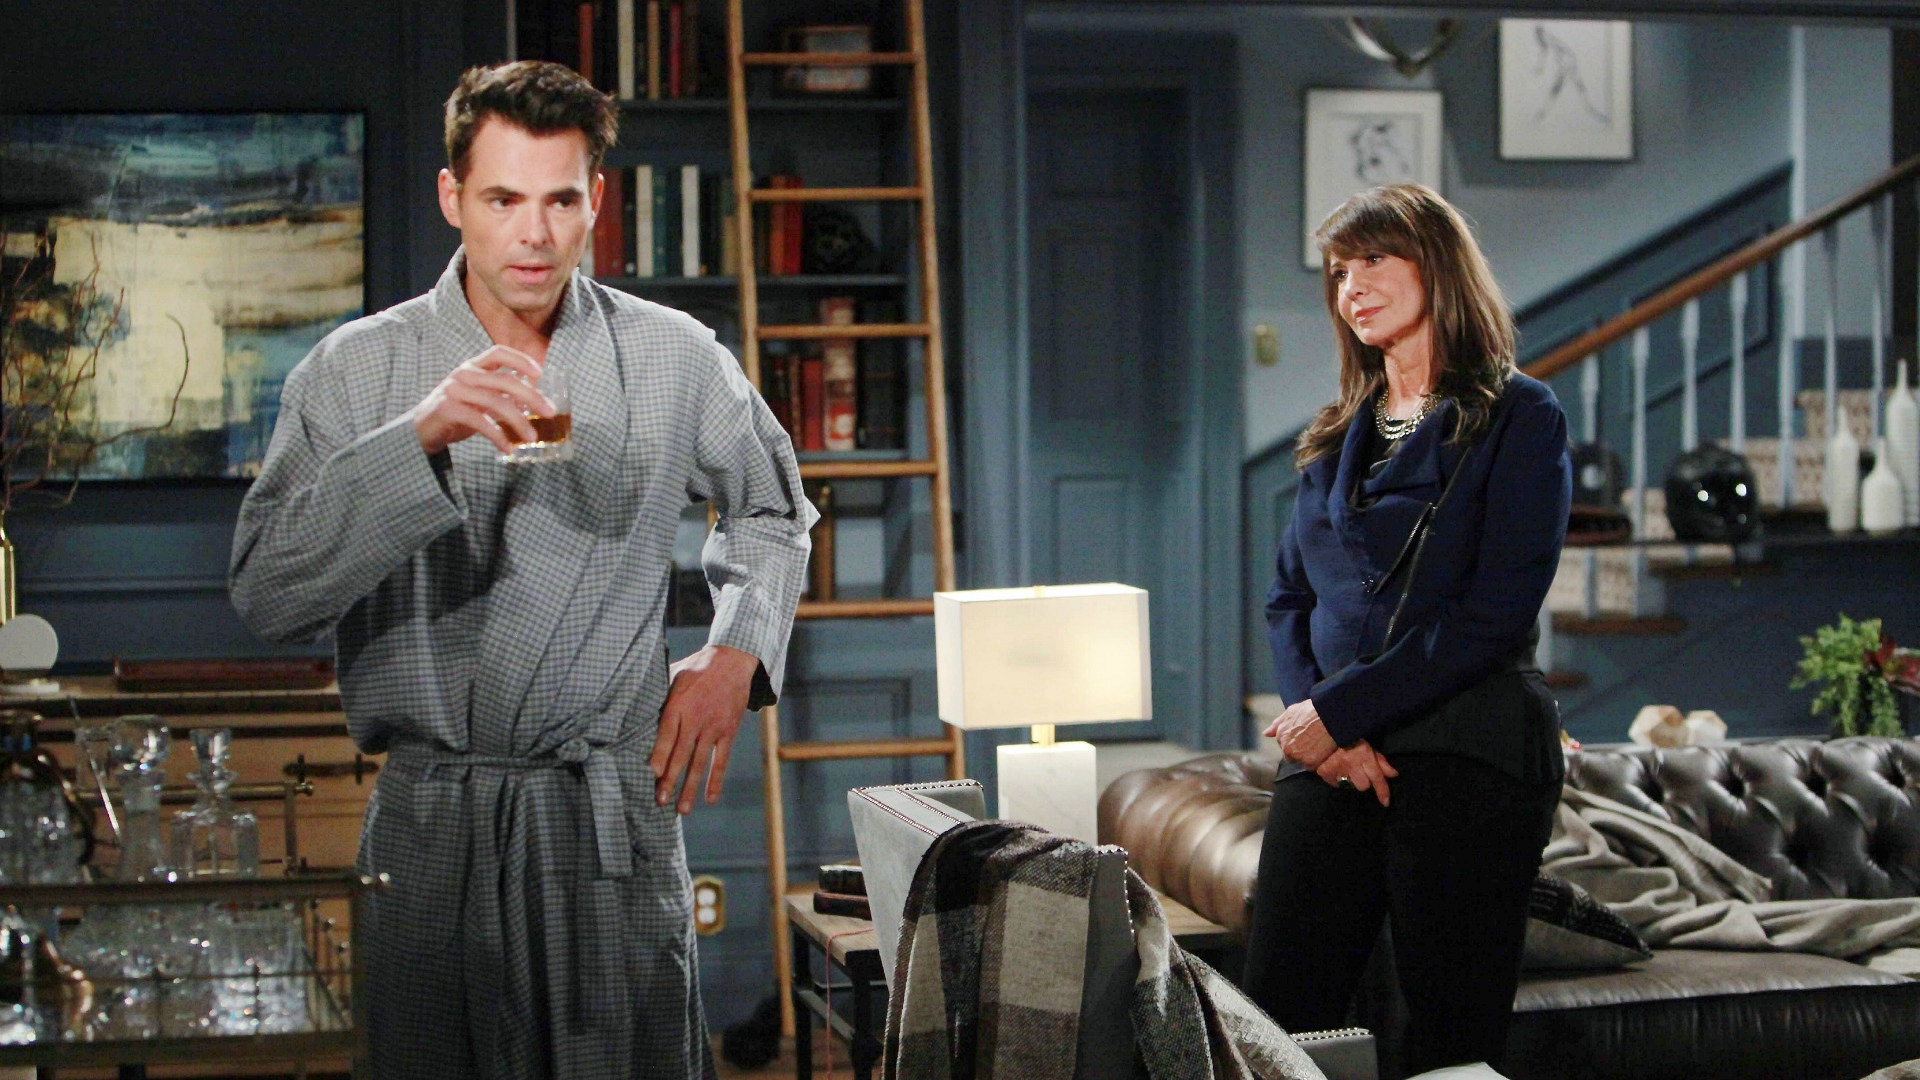 Jill's return to Genoa City surprises her family.